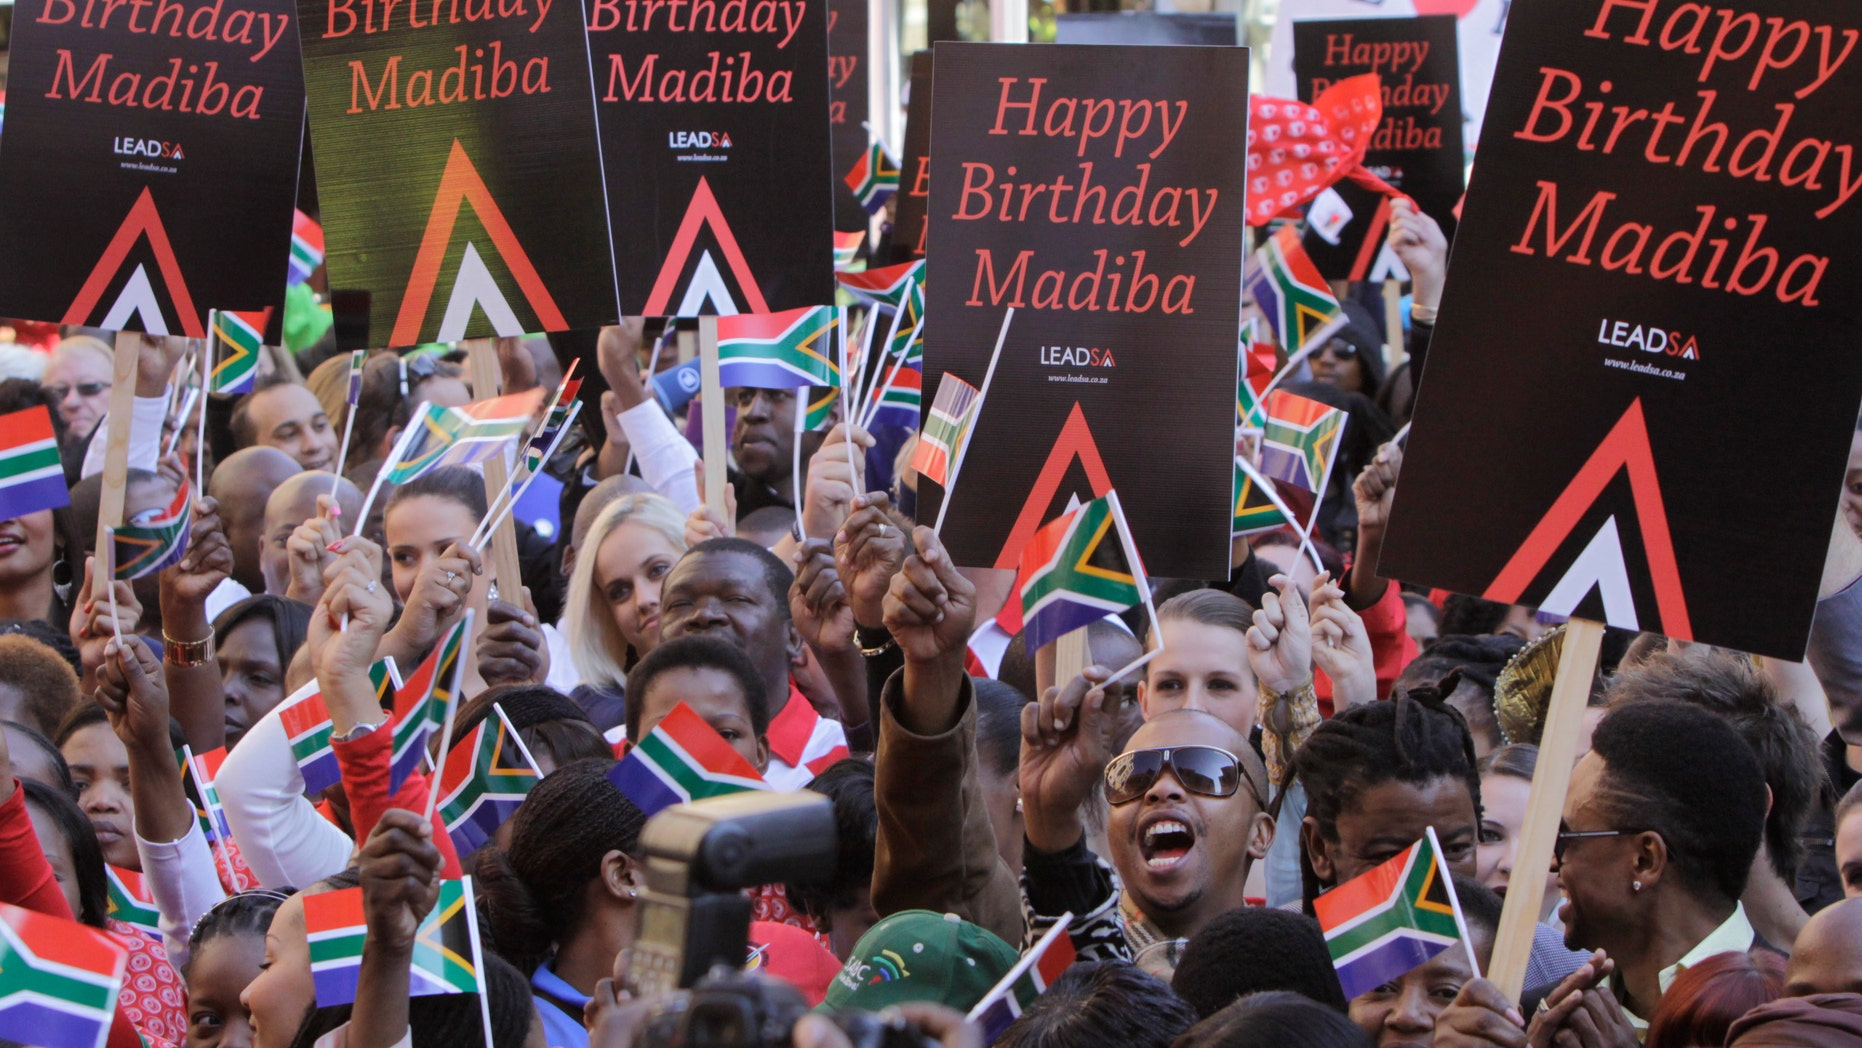 """In this photo taken Friday June 1, 2012,  members of the public and celebrities gather to videotape a sing-a-long birthday wish for former president Nelson Mandela, portrait on woman's shirt, on Nelson Mandela Square in Johannesburg. Mandela's office on Monday June 18 2012 has released the video of South Africans singing """"Happy Birthday"""" in an effort to motivate people around the world to salute the anti-apartheid icon ahead of his 94th birthday next month. (AP Photo/Denis Farrell)"""